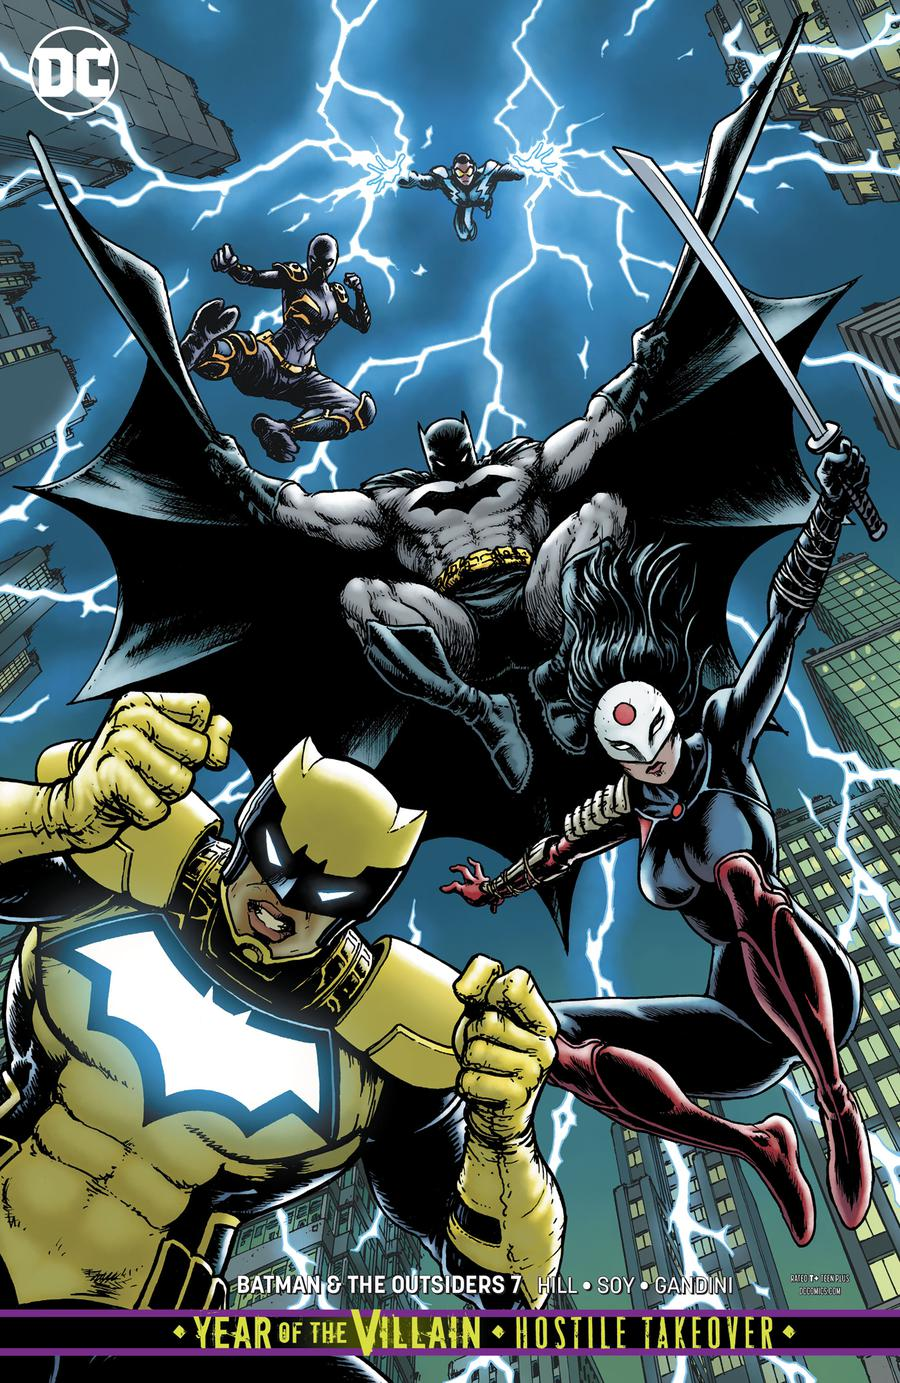 Batman And The Outsiders Vol 3 #7 Cover B Variant Chris Burnham Cover (Year Of The Villain Hostile Takeover Tie-In)